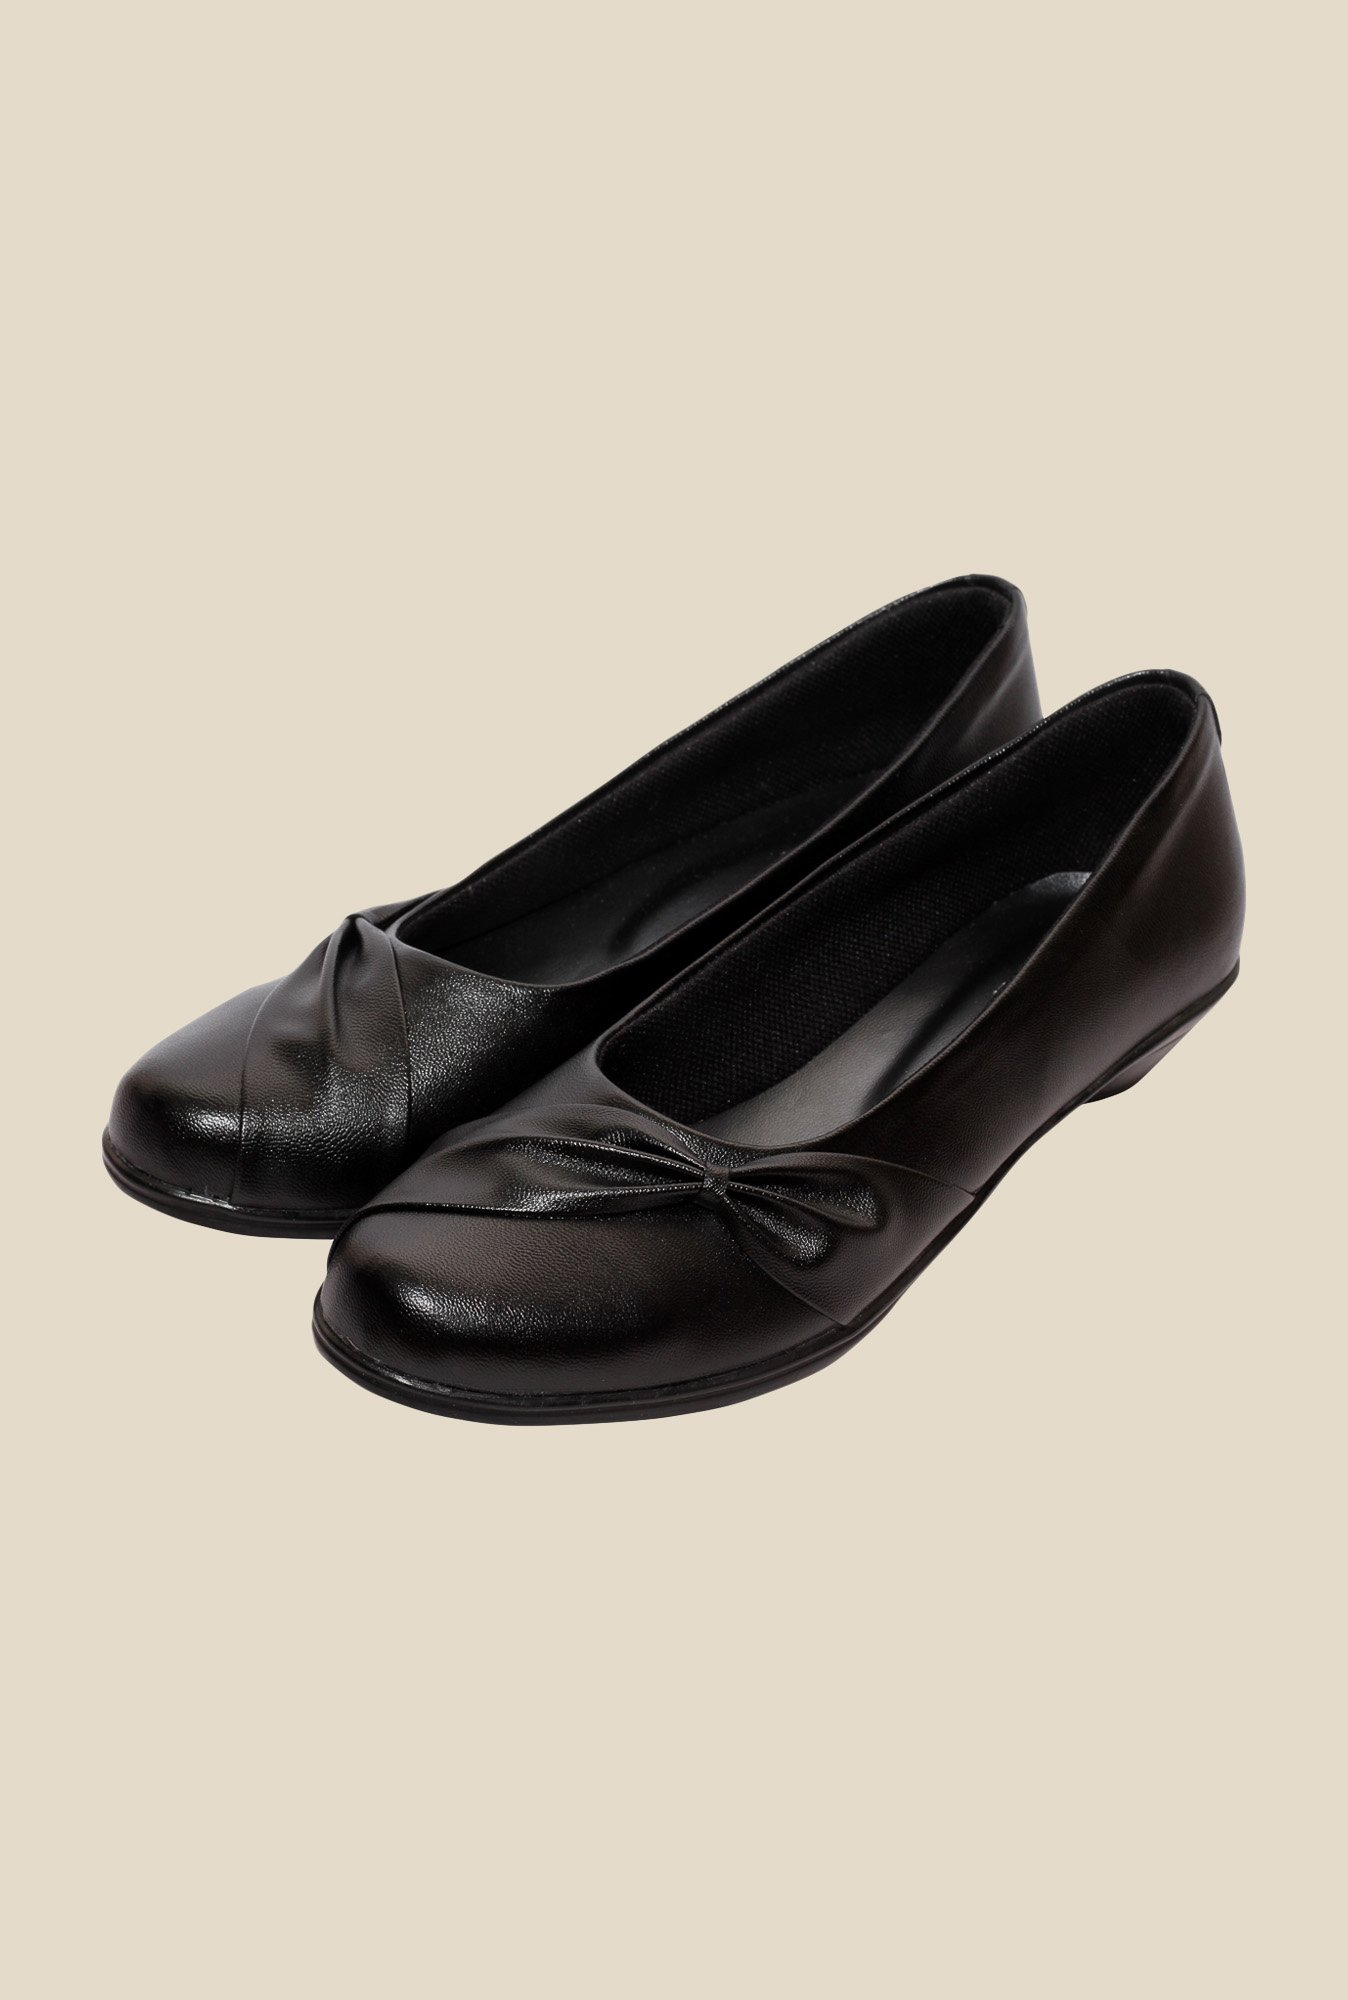 Global Step Black Flat Ballets